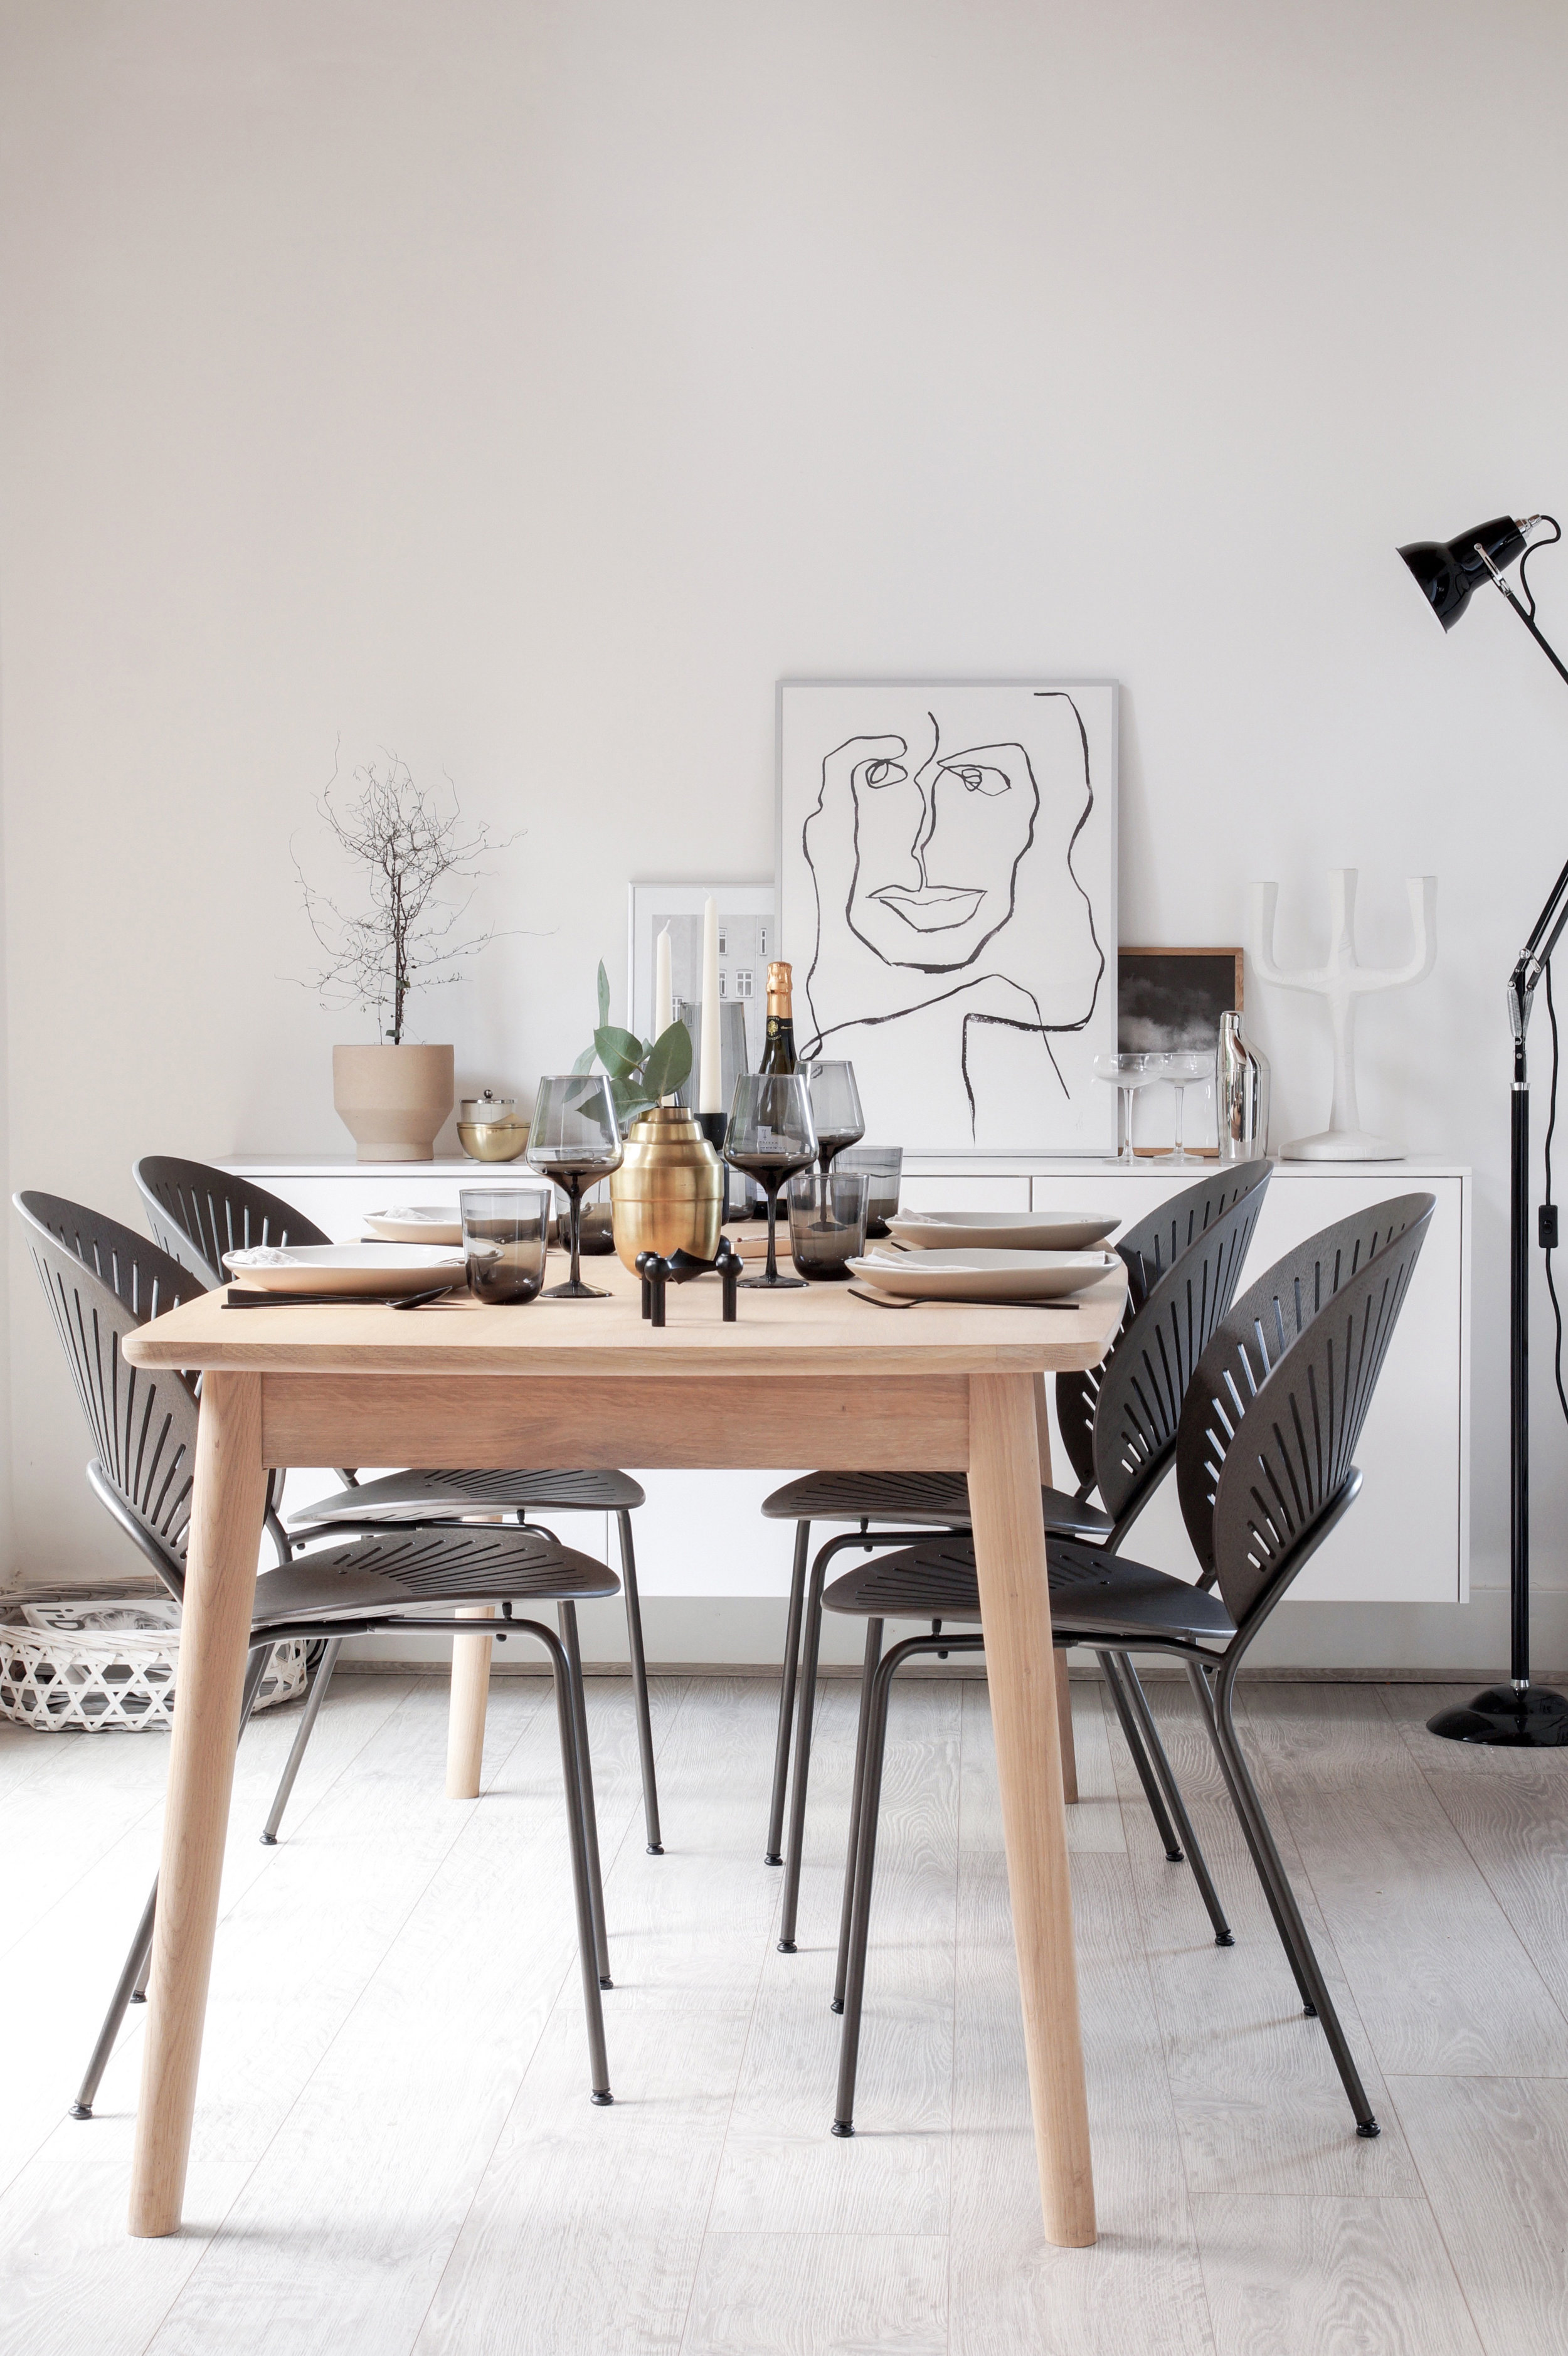 Have your products styled in a design bloggers home. -